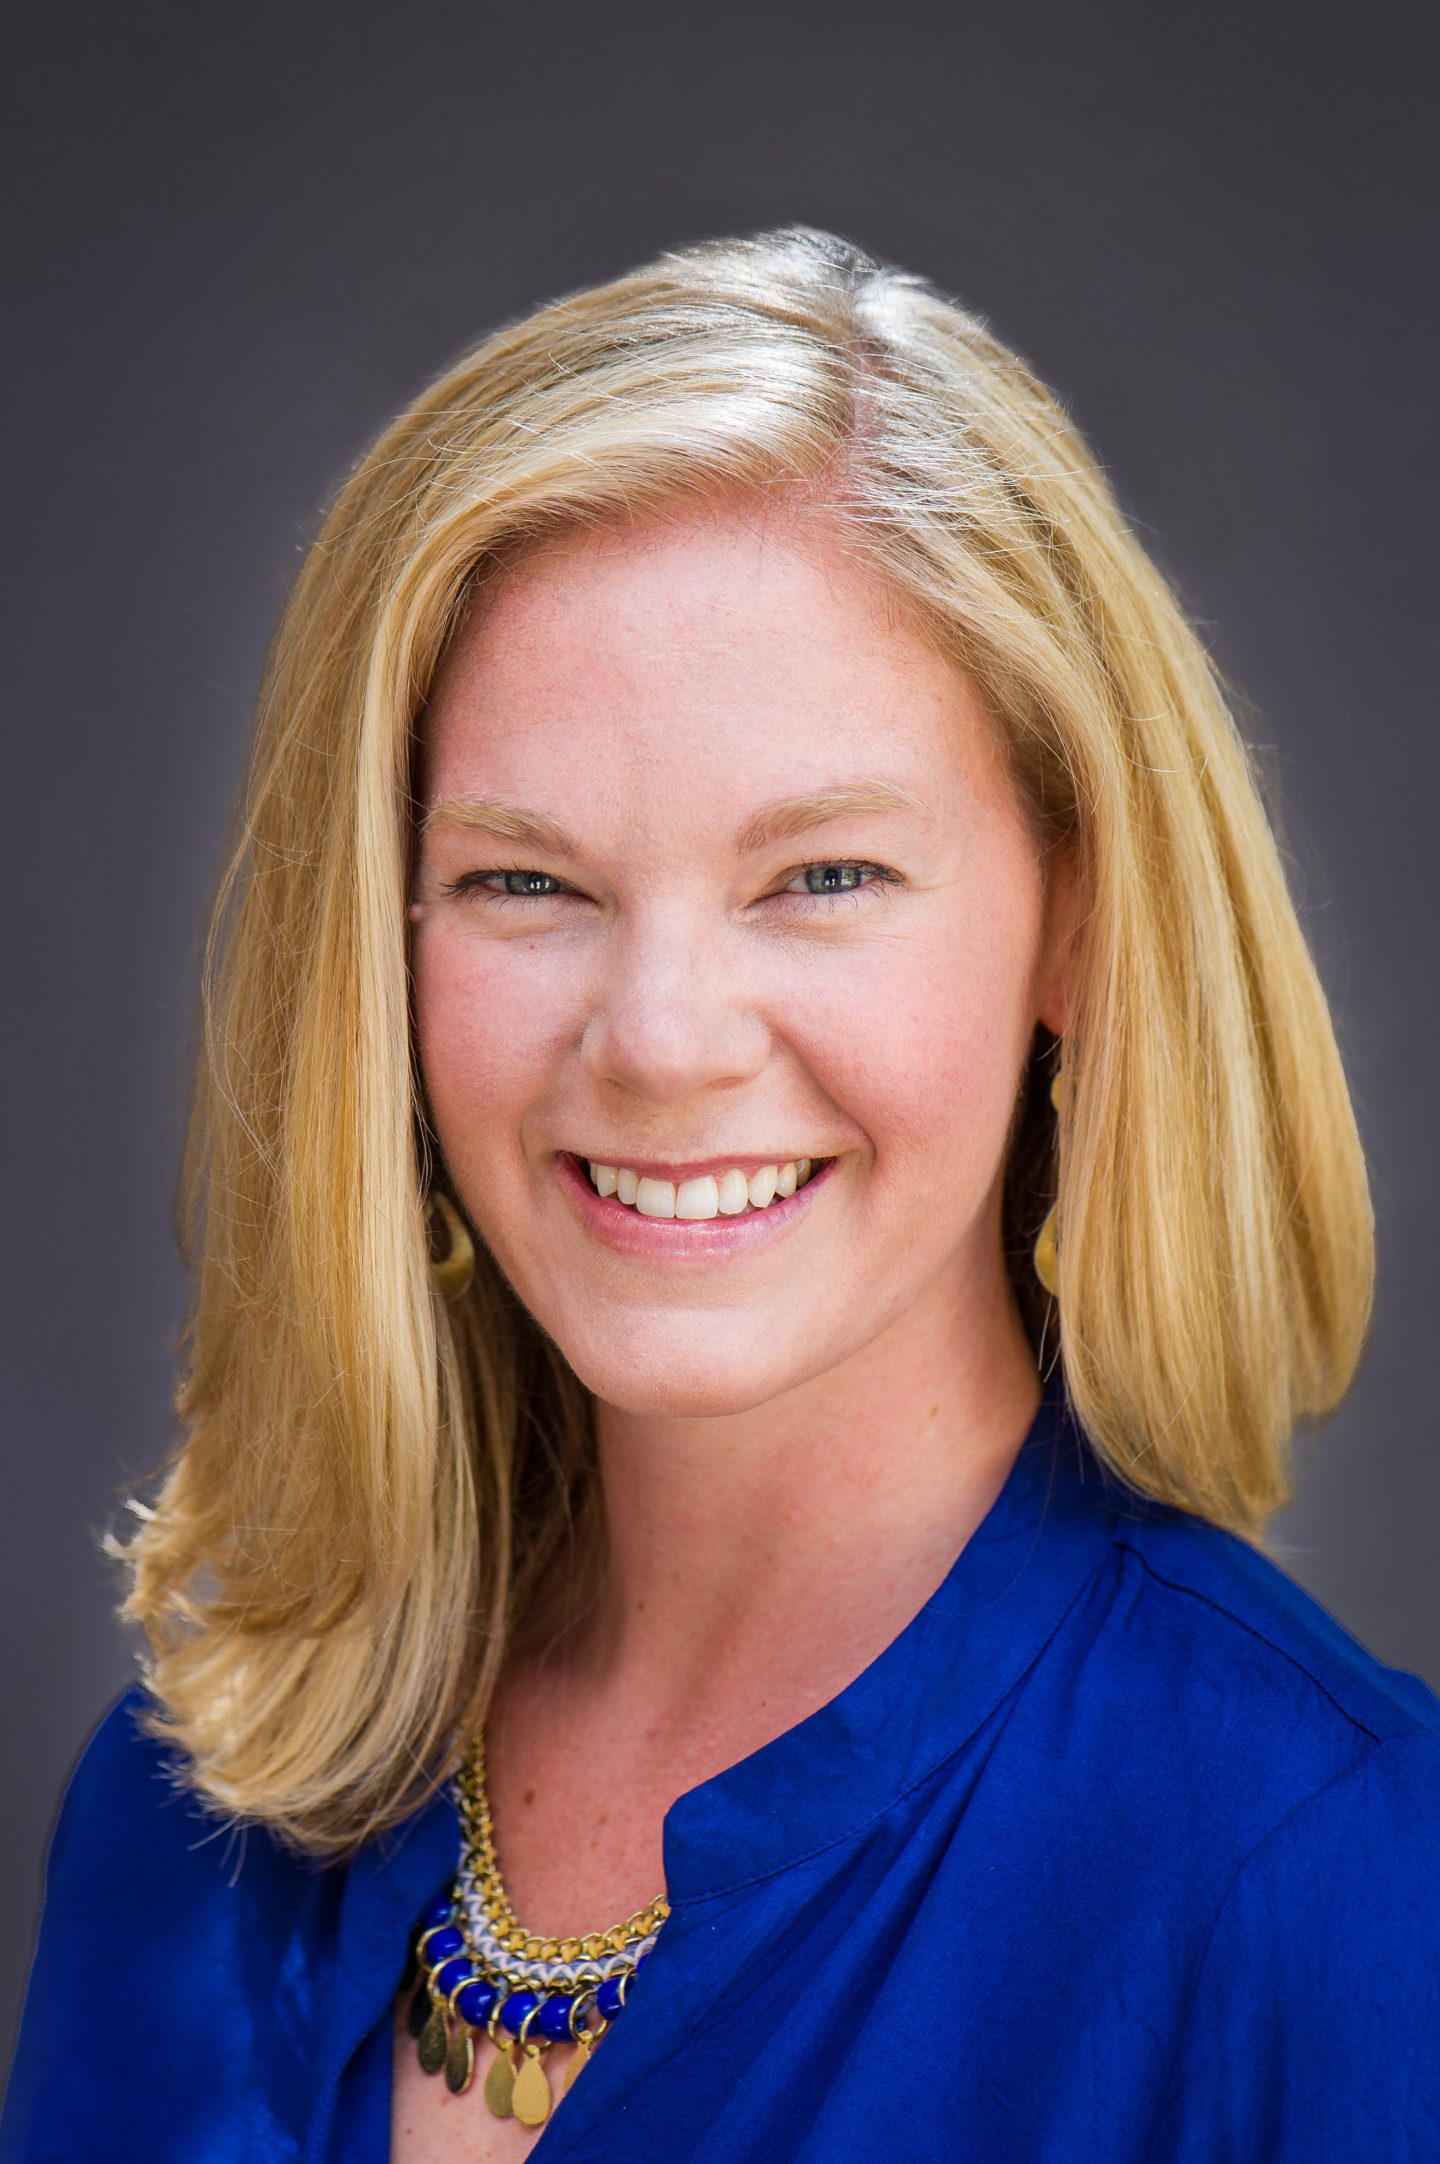 Profile photo for Erika Lunkenheimer, Ph.D.